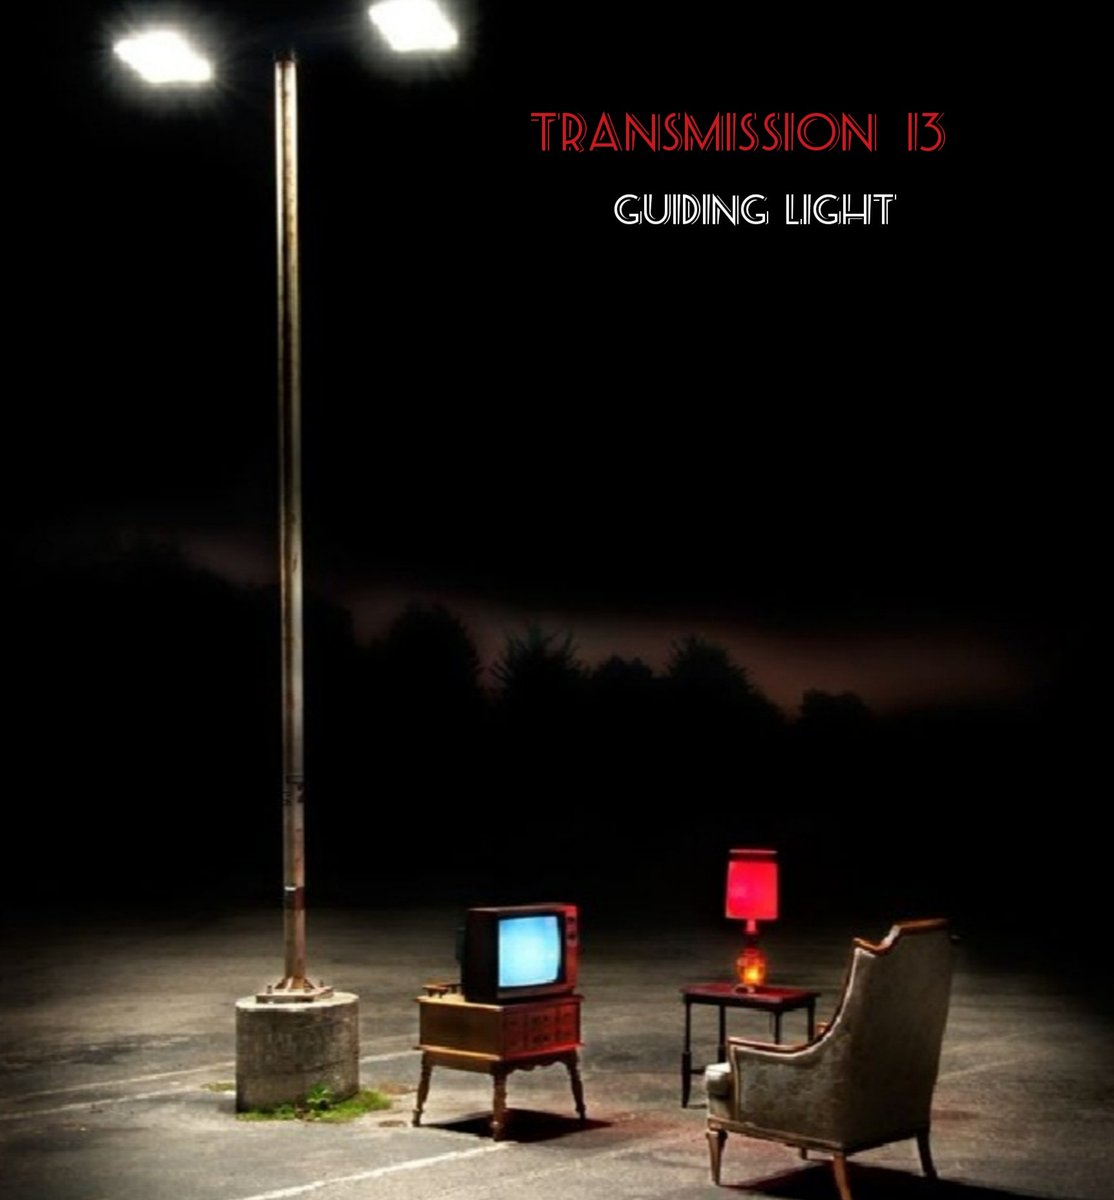 Recorded during the recent lockdown period. Guiding Light is an album of ambient atmospheric music from Transmission 13. #ambient #soundtrack #freedownload #electronicmusic #Manchester #filmscore http://vanguardistarecords.bandcamp.com/album/guiding-light…pic.twitter.com/o6u02D0aou